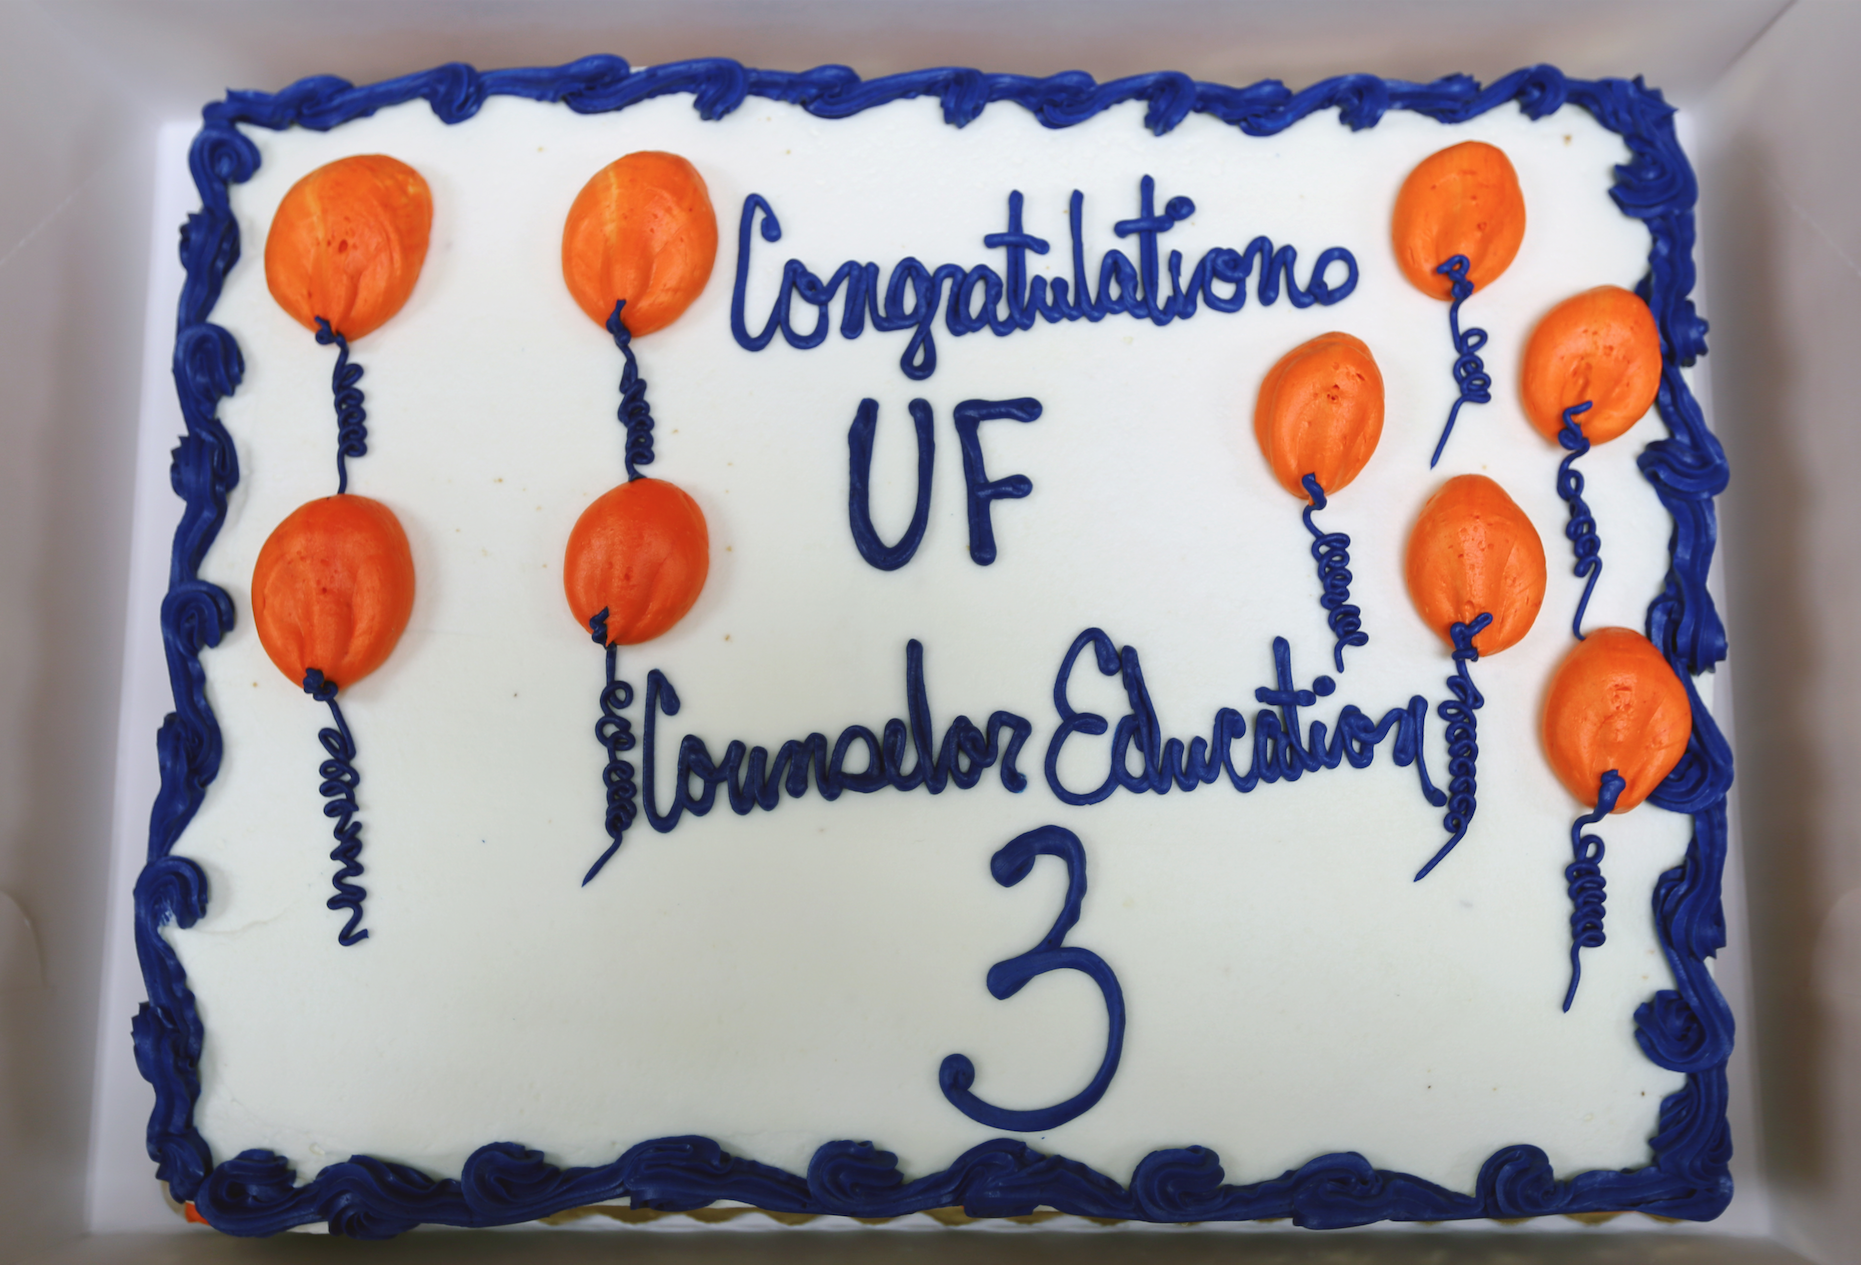 Congratulations UF Counselor Education Cake